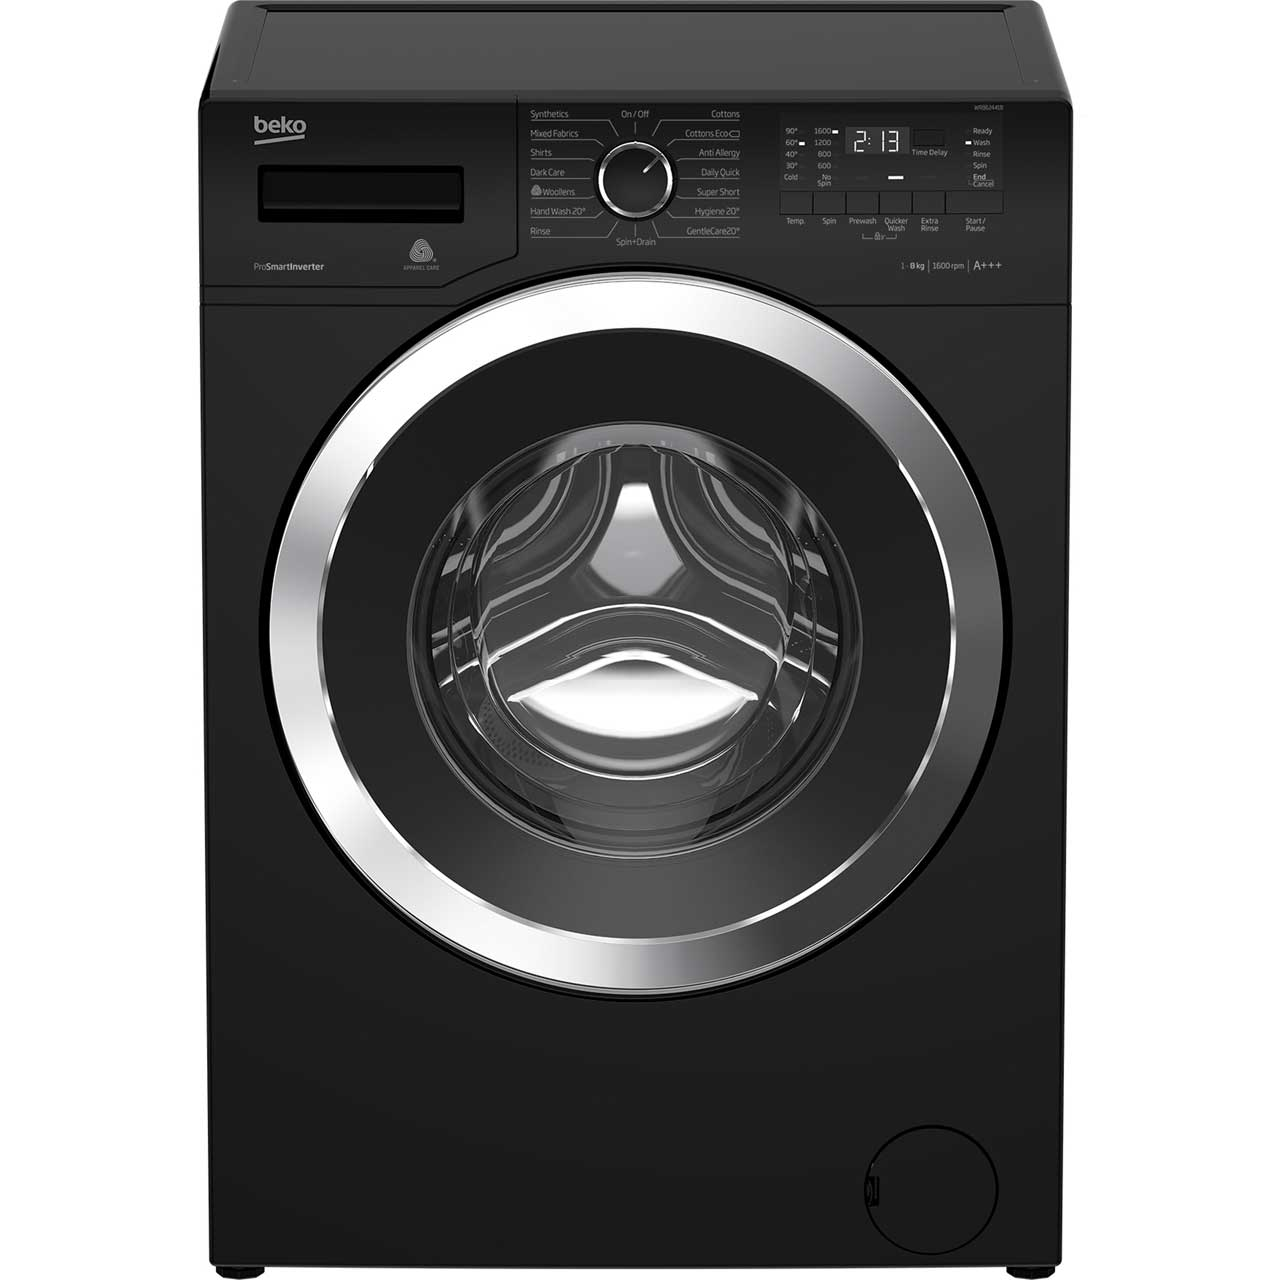 Beko WR862441B Free Standing Washing Machine in Black